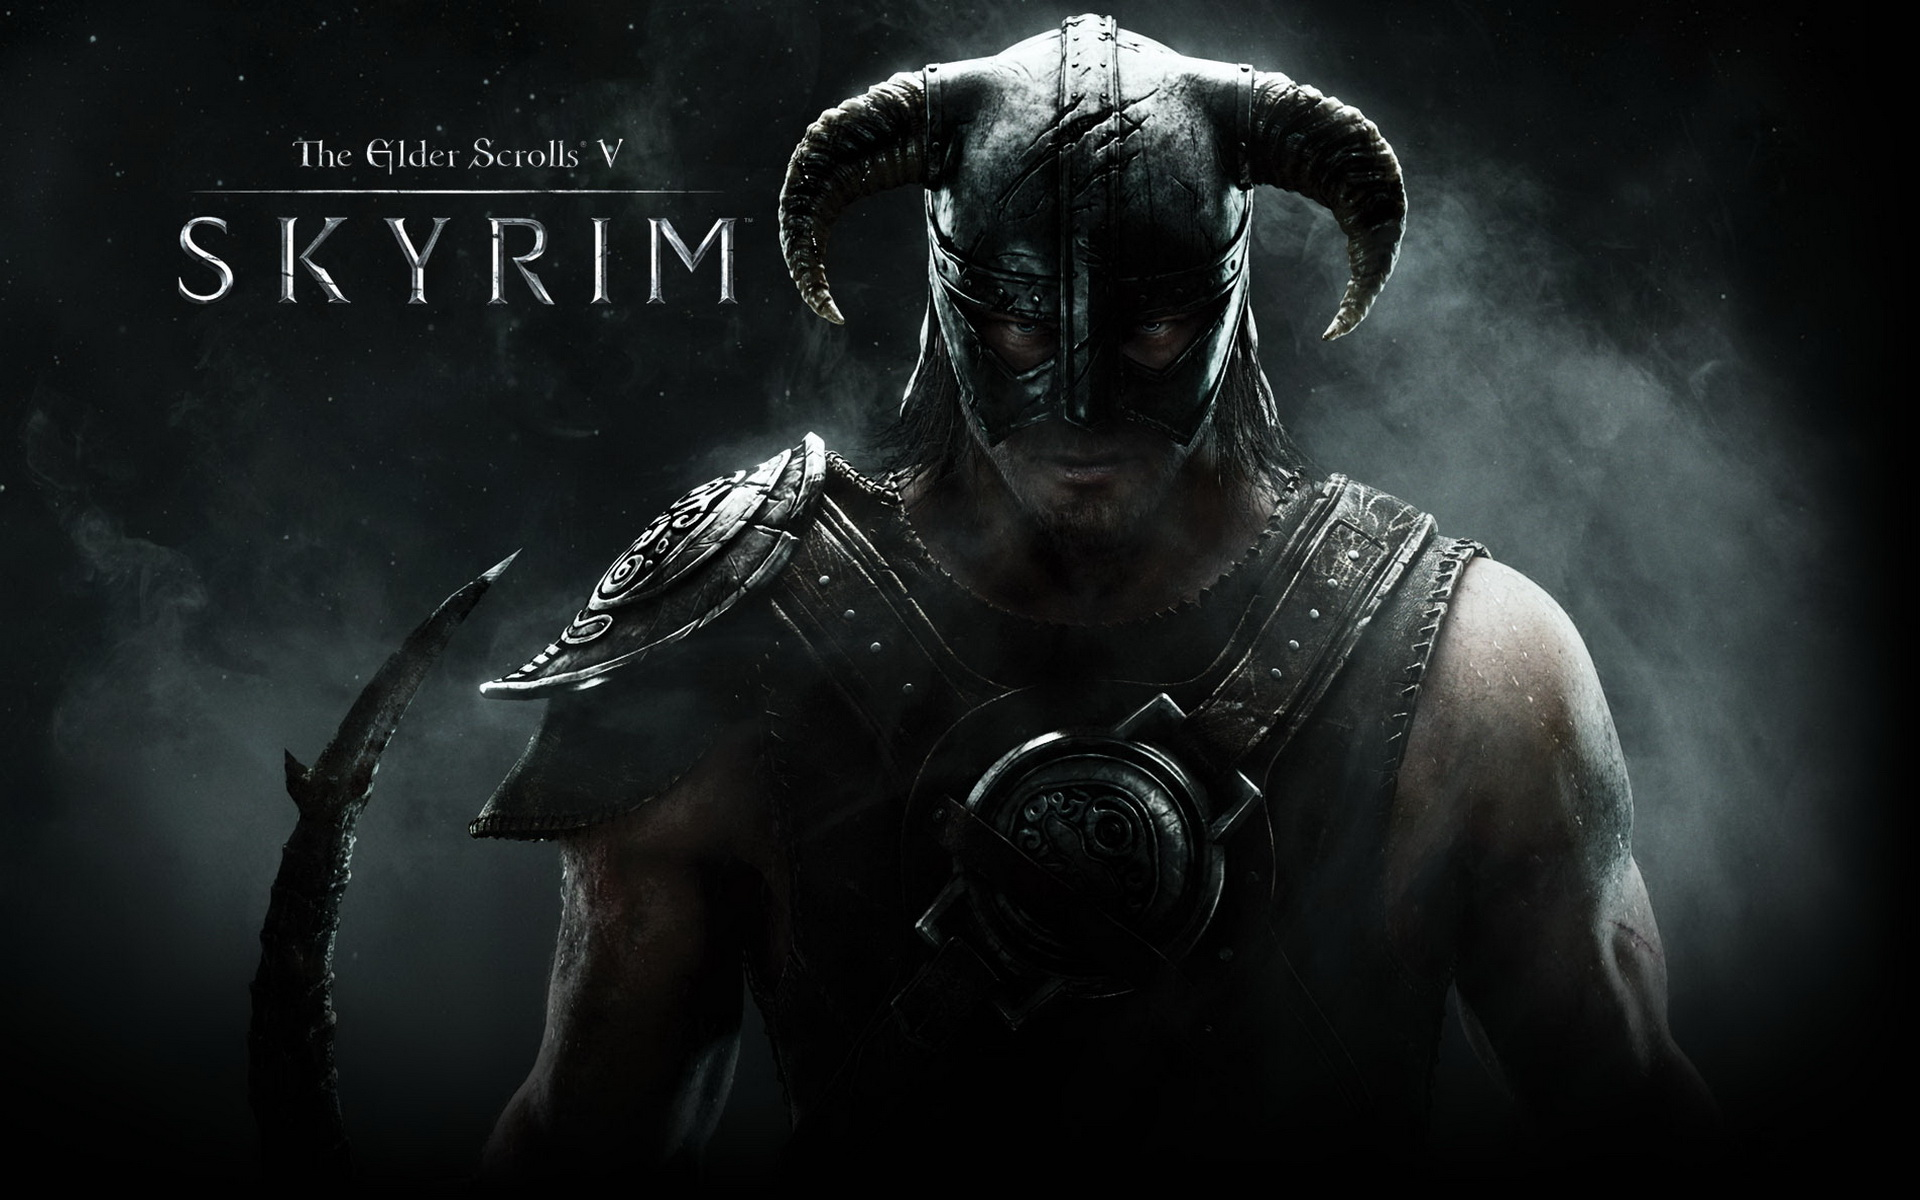 The Elder Scrolls V Skyrim Special Edition For Ps4 Xbox One And Pc Announced Officially